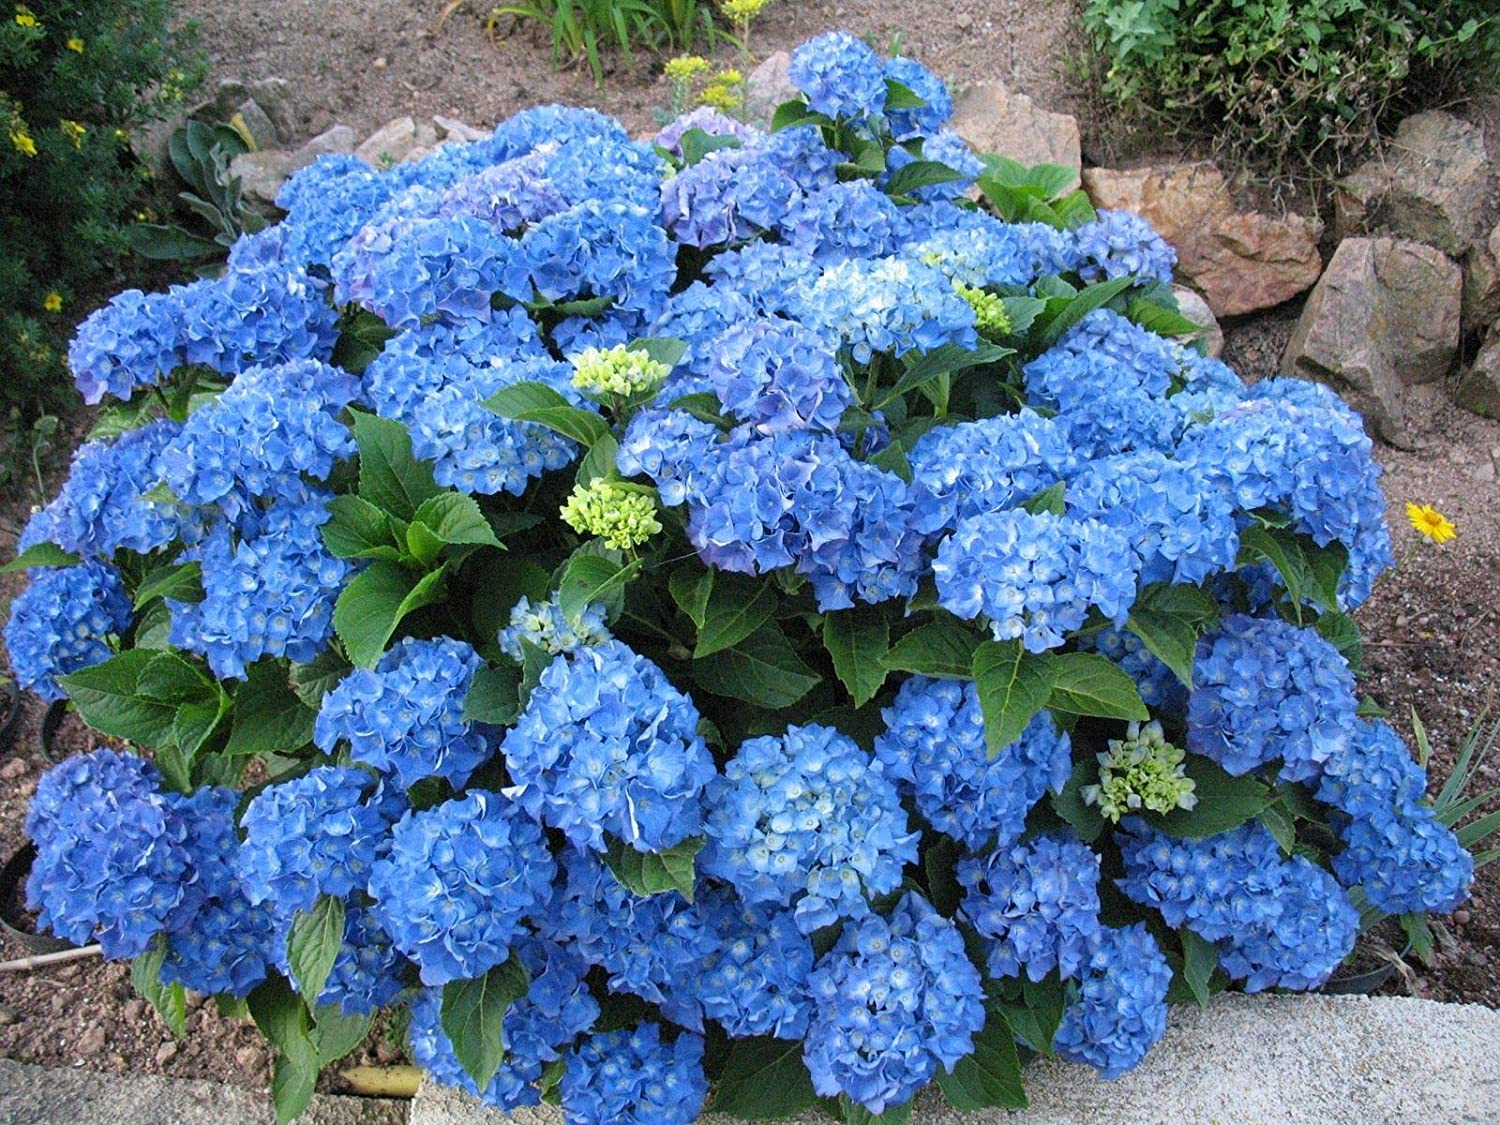 Hydrangea macrophylla Adria, 3 Plants in 9cm Pots IR Plant and Garden Centre